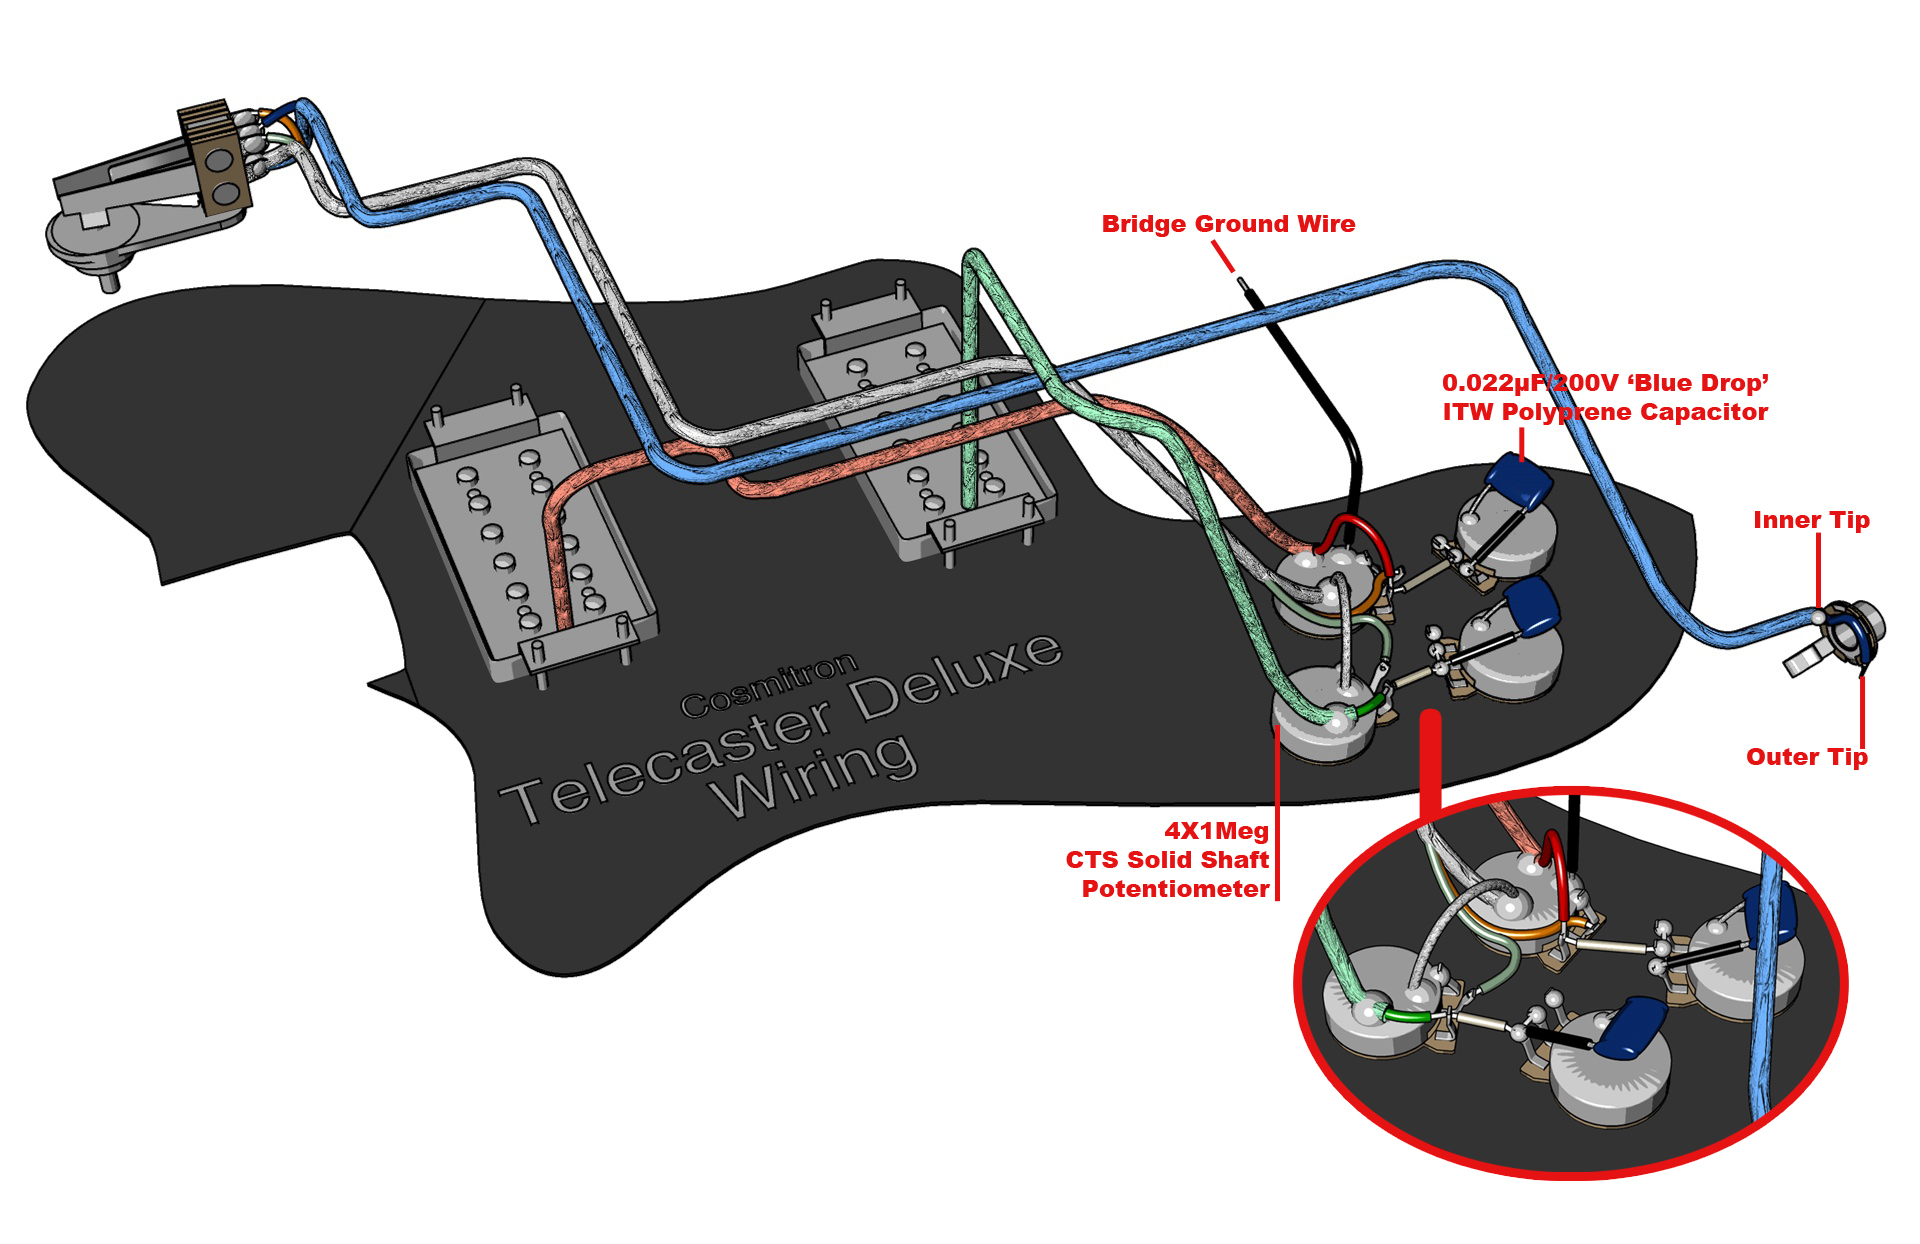 strat wiring diagram 1972 blender strat wiring diagram help me sort out this 72-76 telecaster custom - diyaudio #12